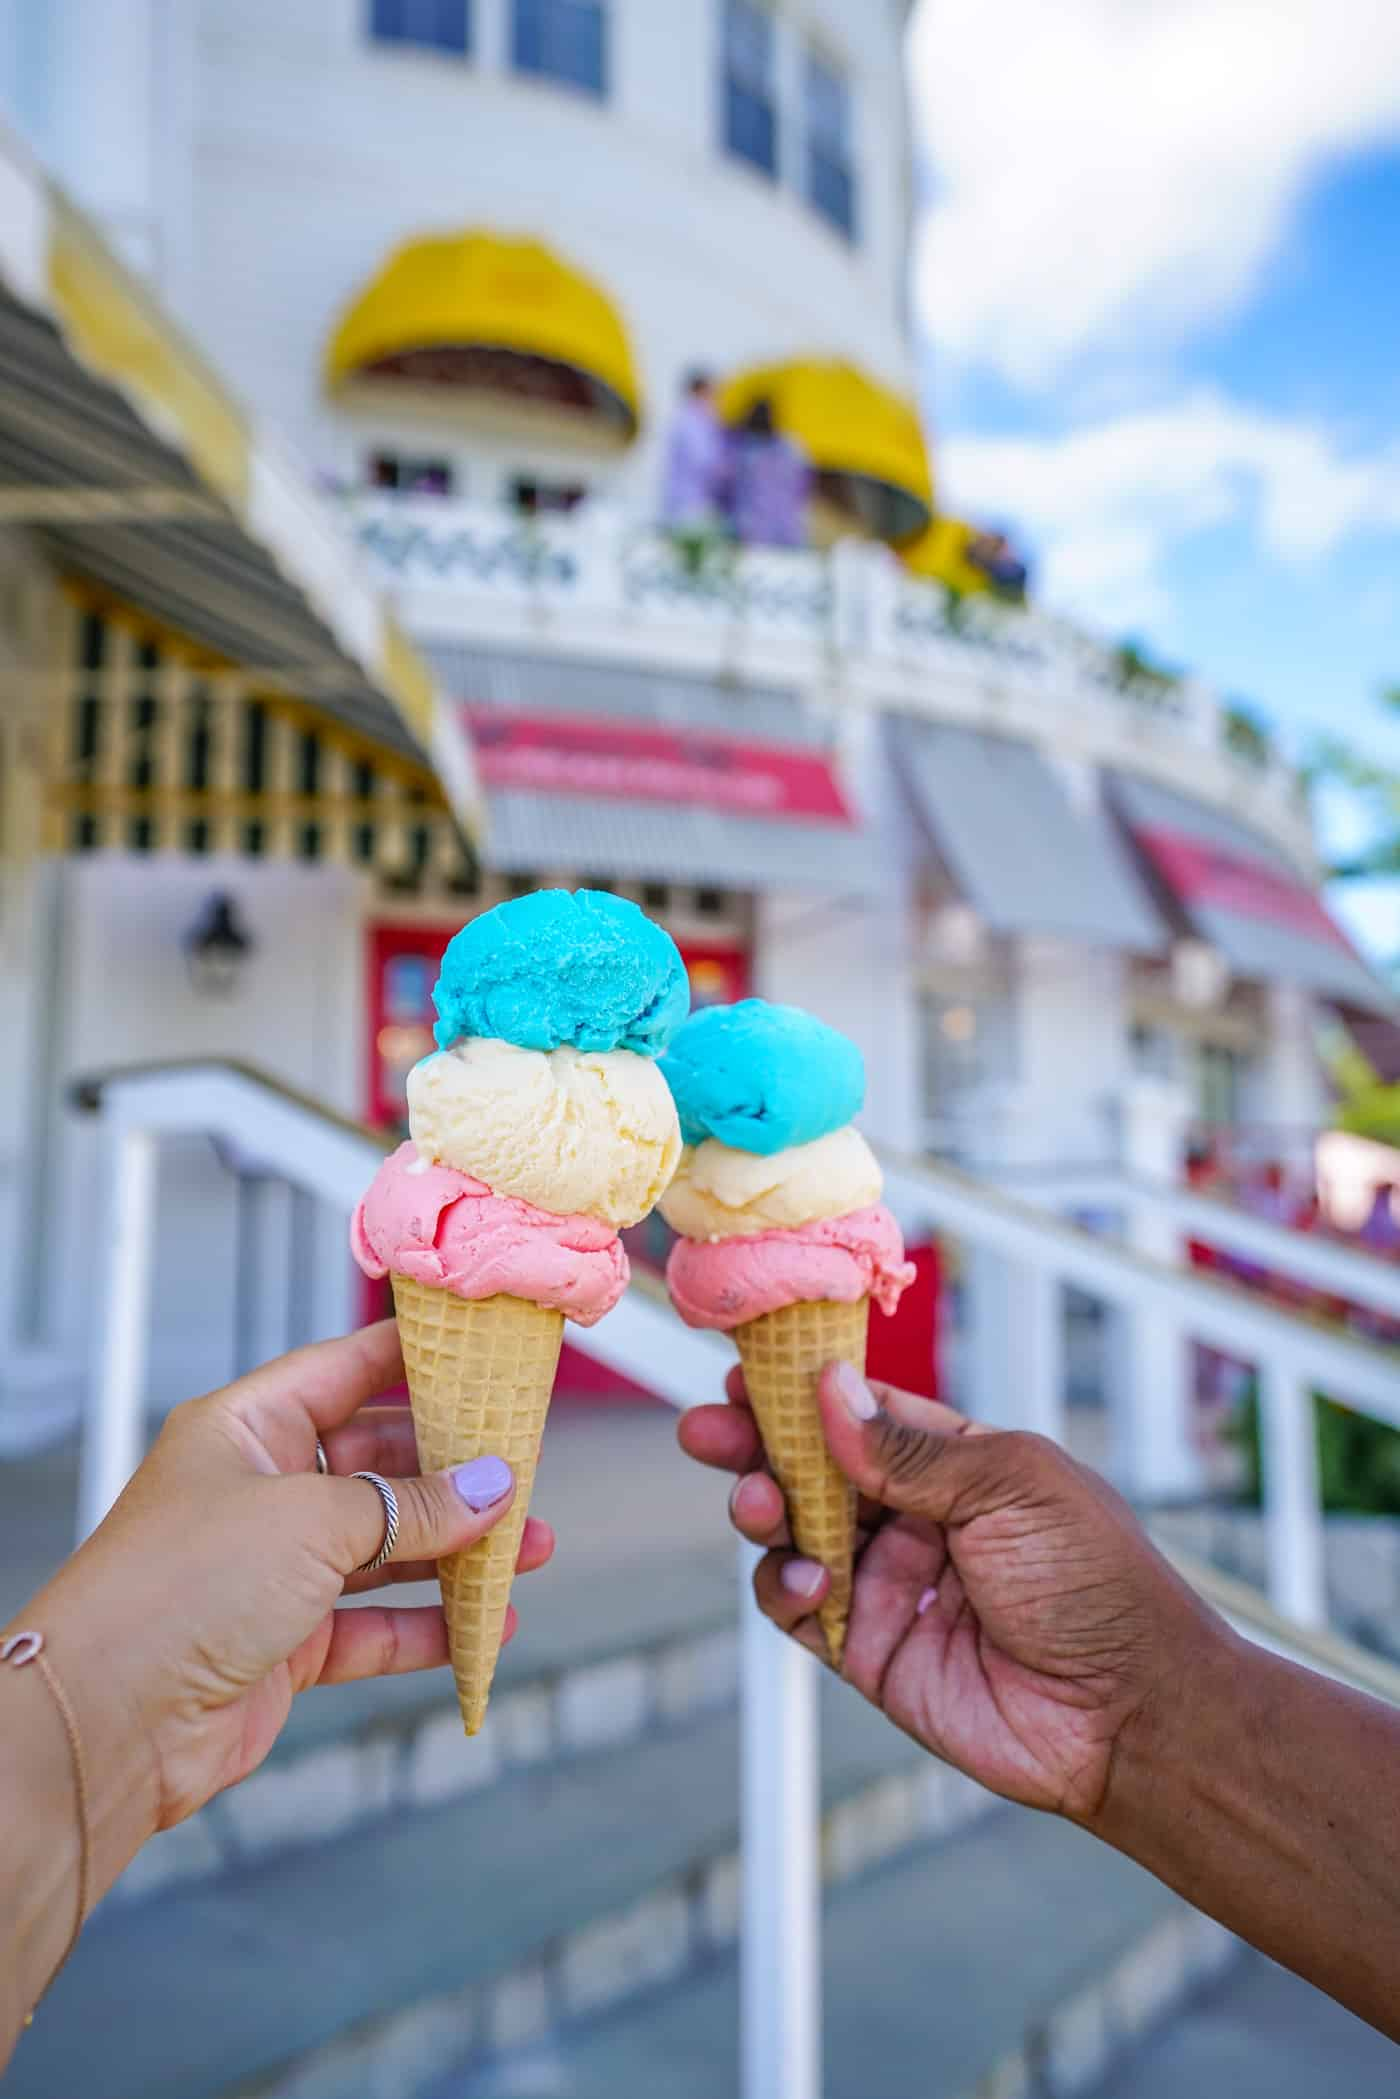 Red, white and blue ice cream on waffle cones at the Grand Hotel.